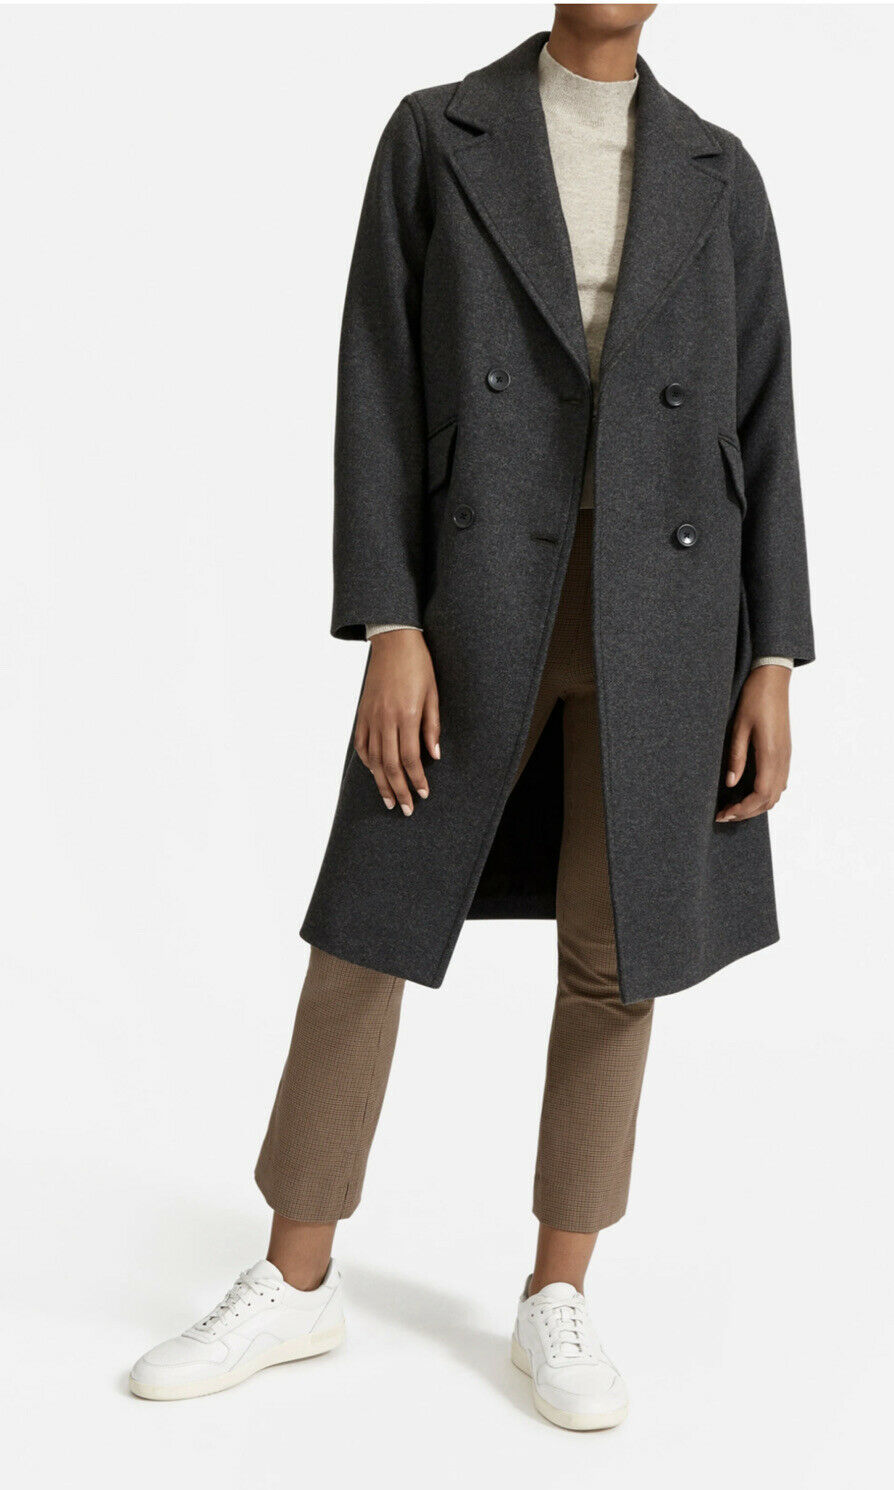 NWT Everlane The Italian ReWool Overcoat Womens size 2 DK Charcoal Recycled Wool